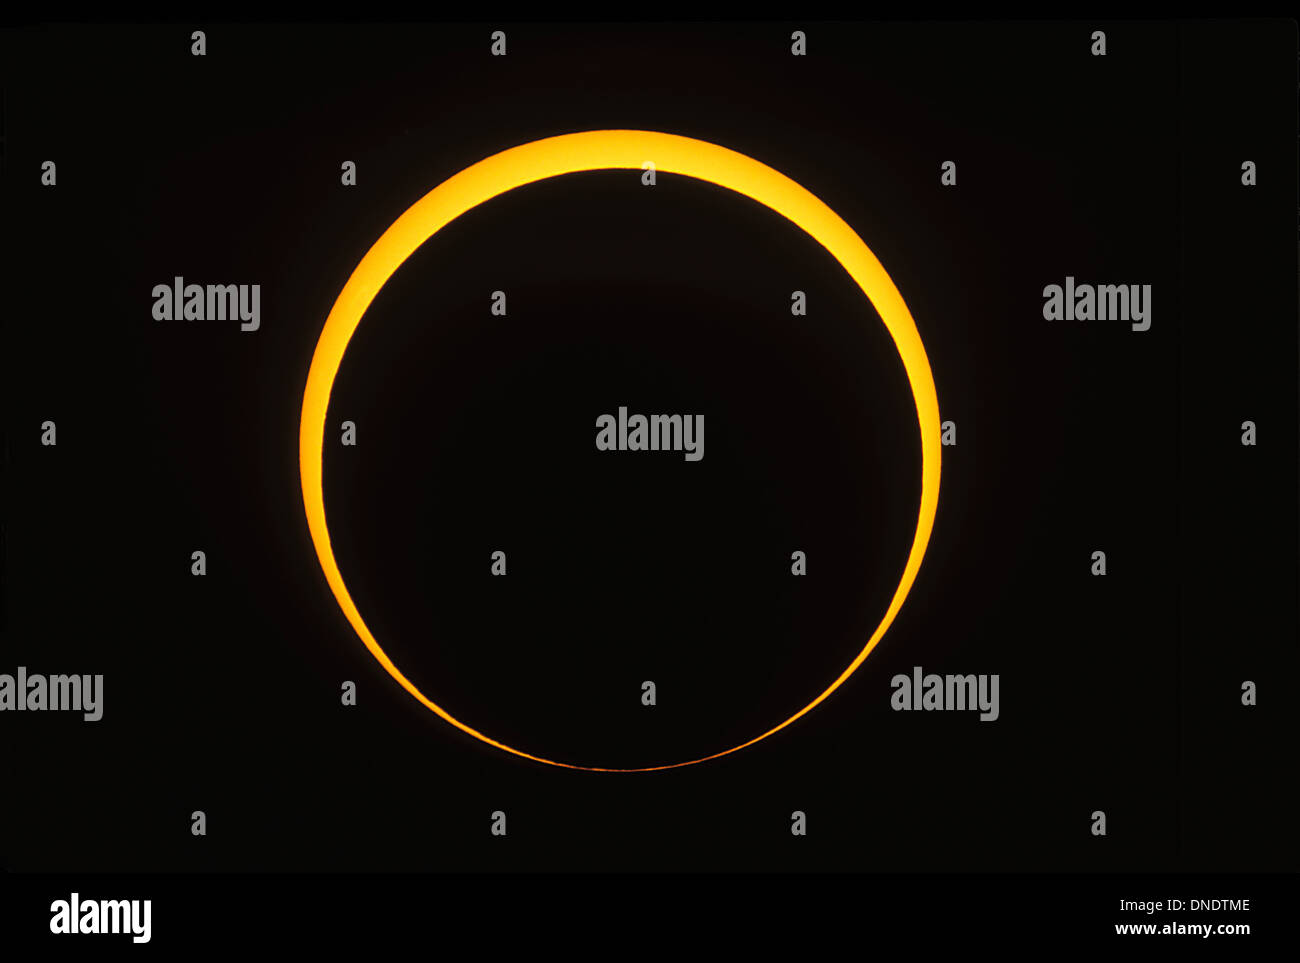 May 10, 1994 - Annular eclipse showing reverse Baily's beads effect. Taken from a site east of Douglas, Arizona. - Stock Image